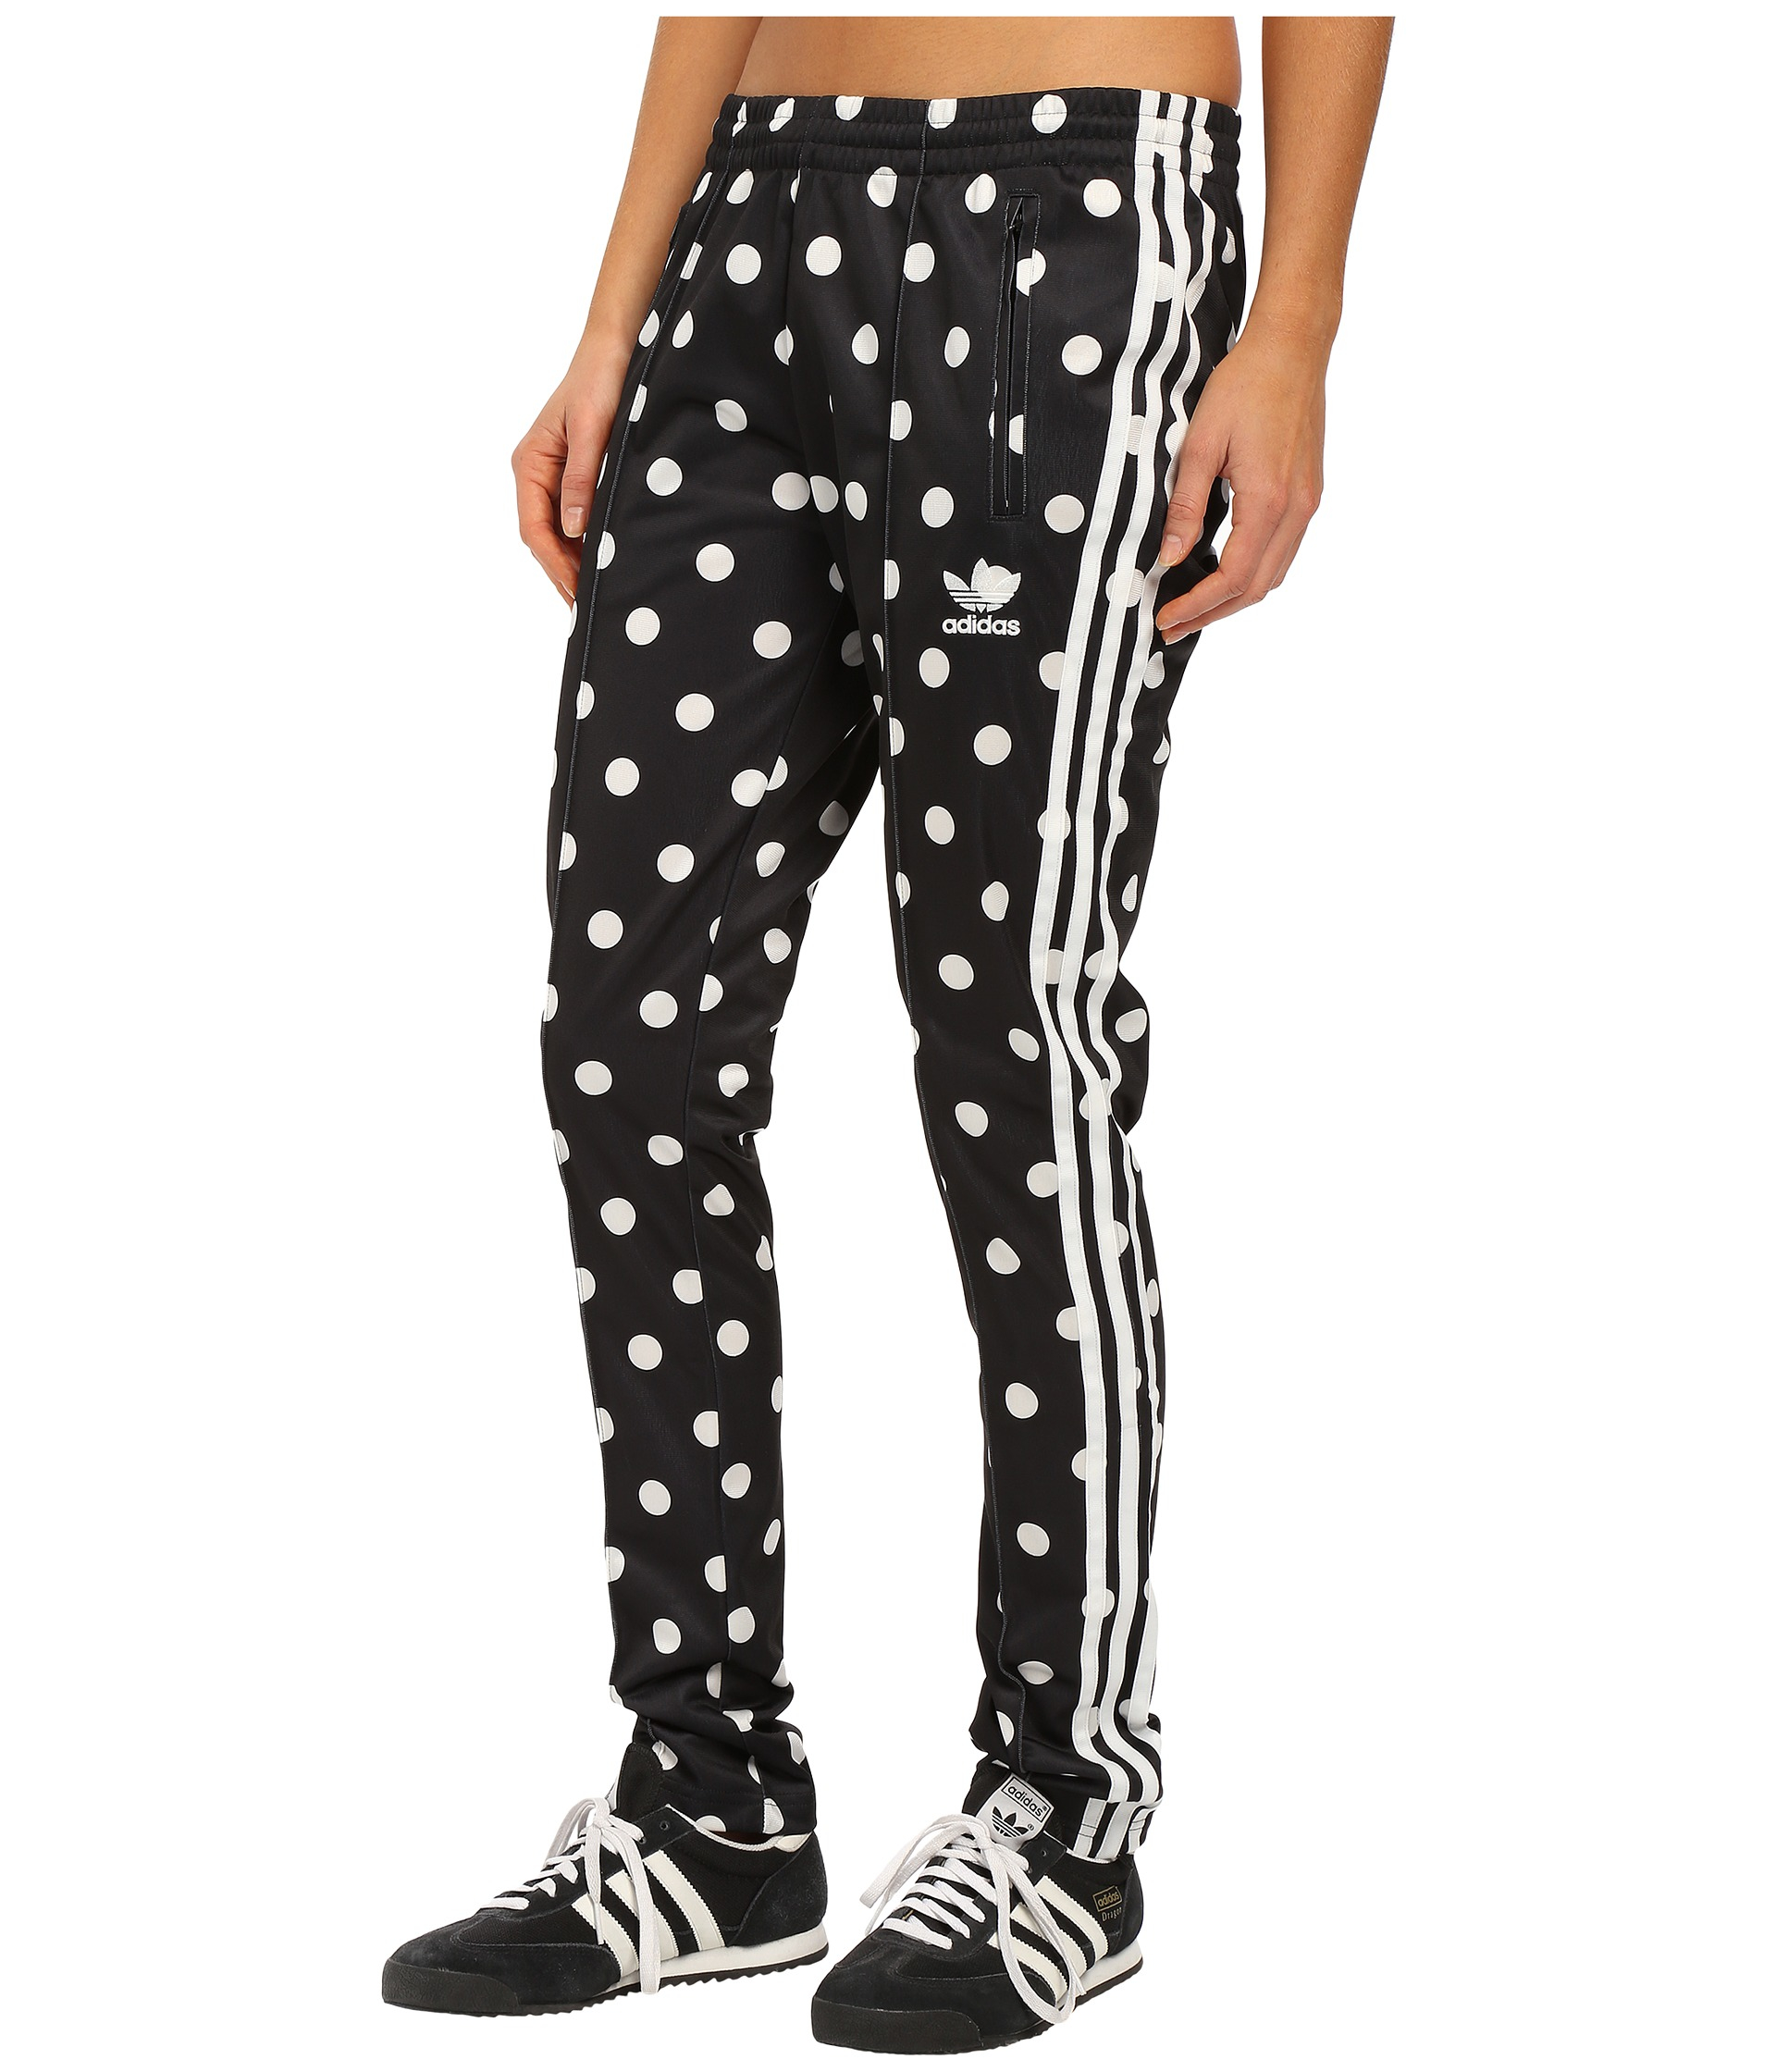 e72594f41348 Lyst - adidas Originals Dots Aop Supergirl Track Pants in Black for Men